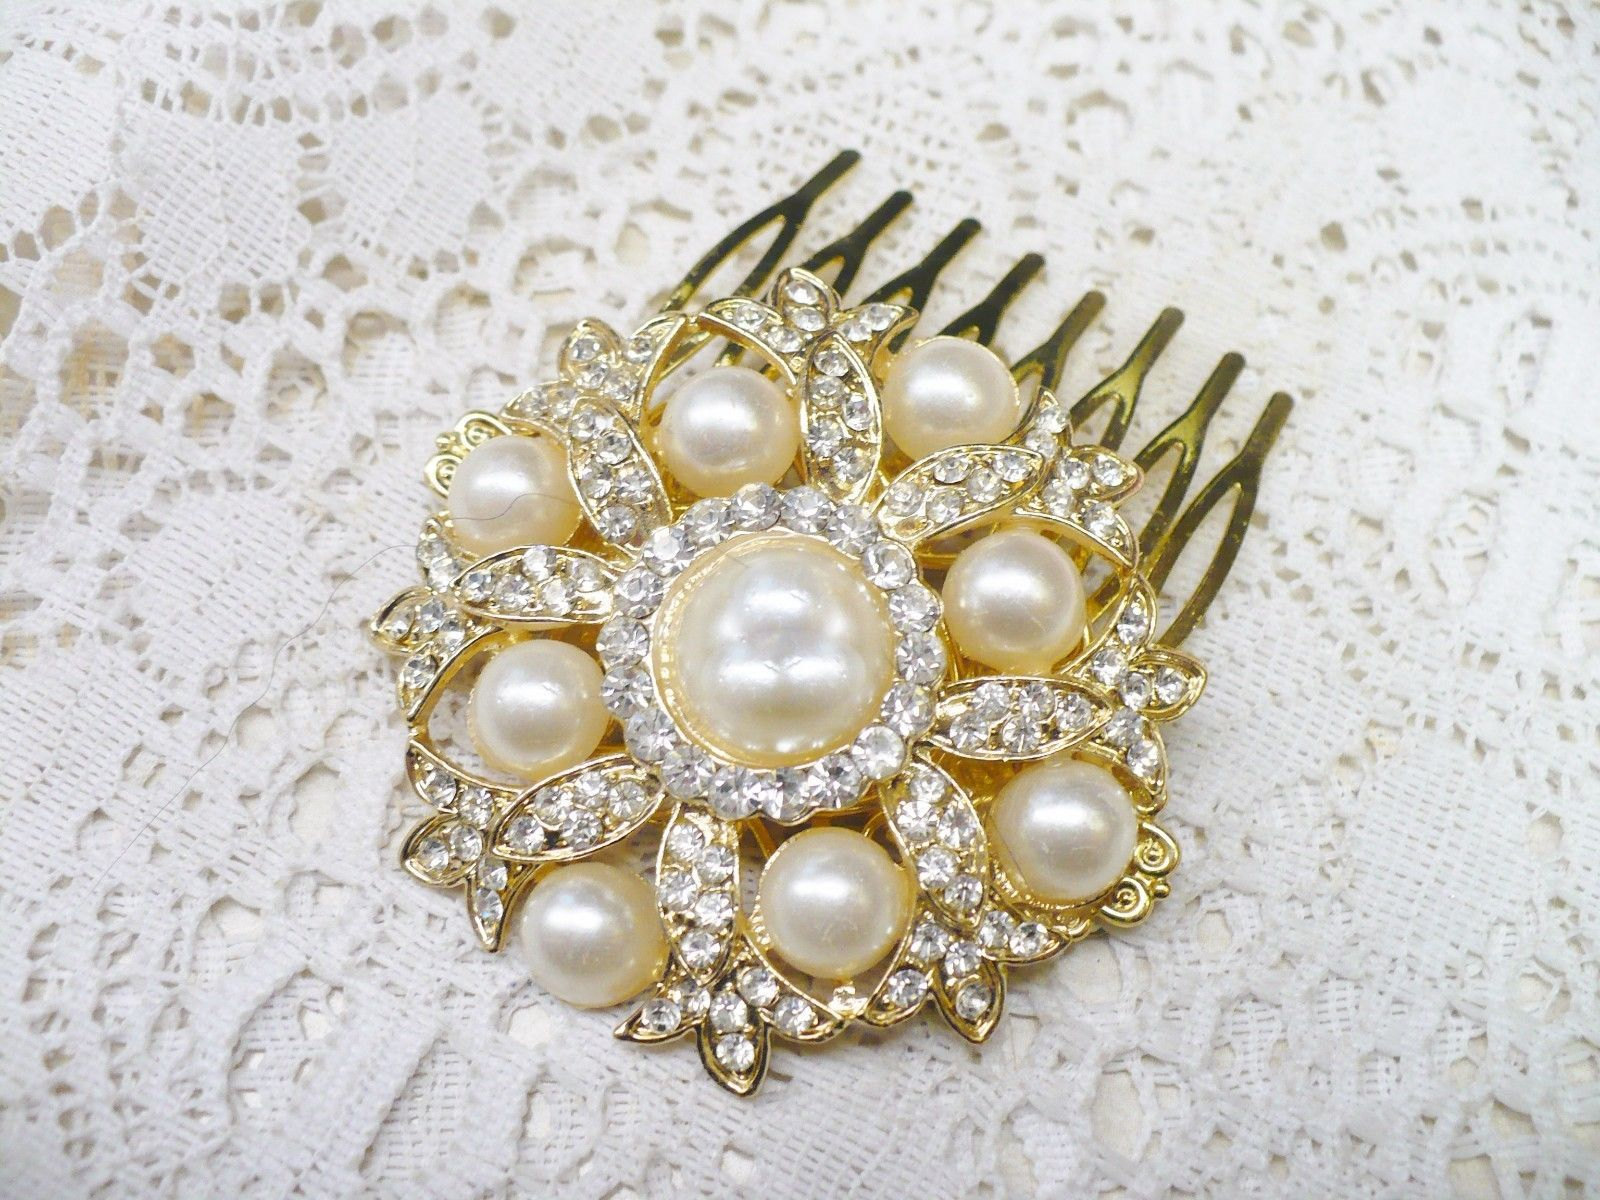 PEARL HAIR COMB GOLD TONE IVORY FAUX PEARLSRHINESTONES